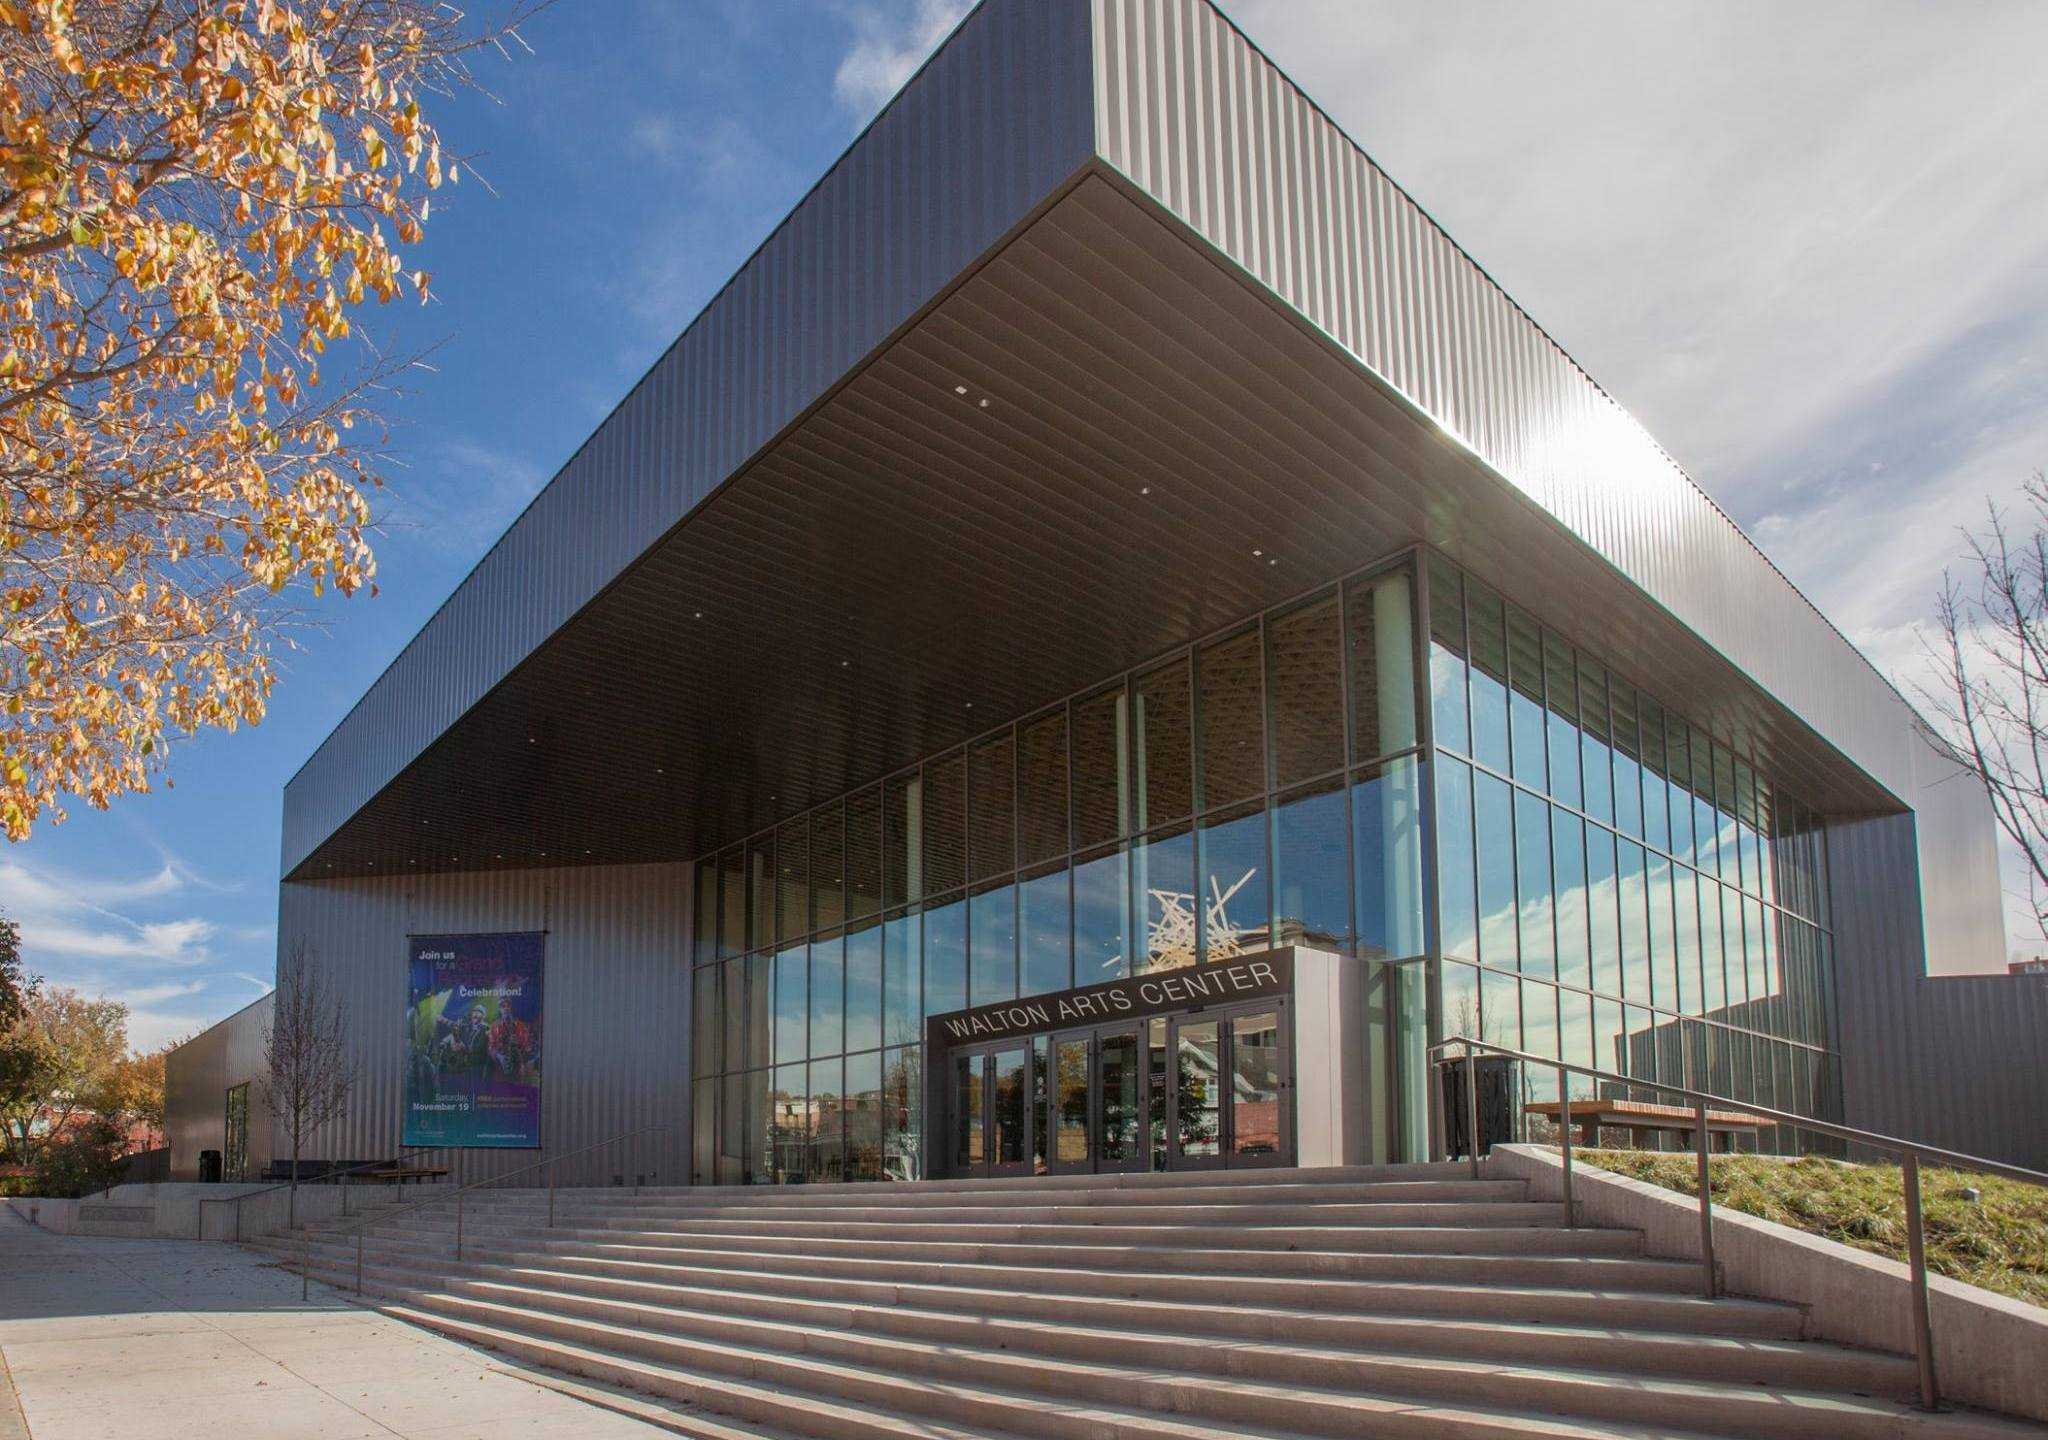 Walton Arts Center Recently_1512336019684.jpg